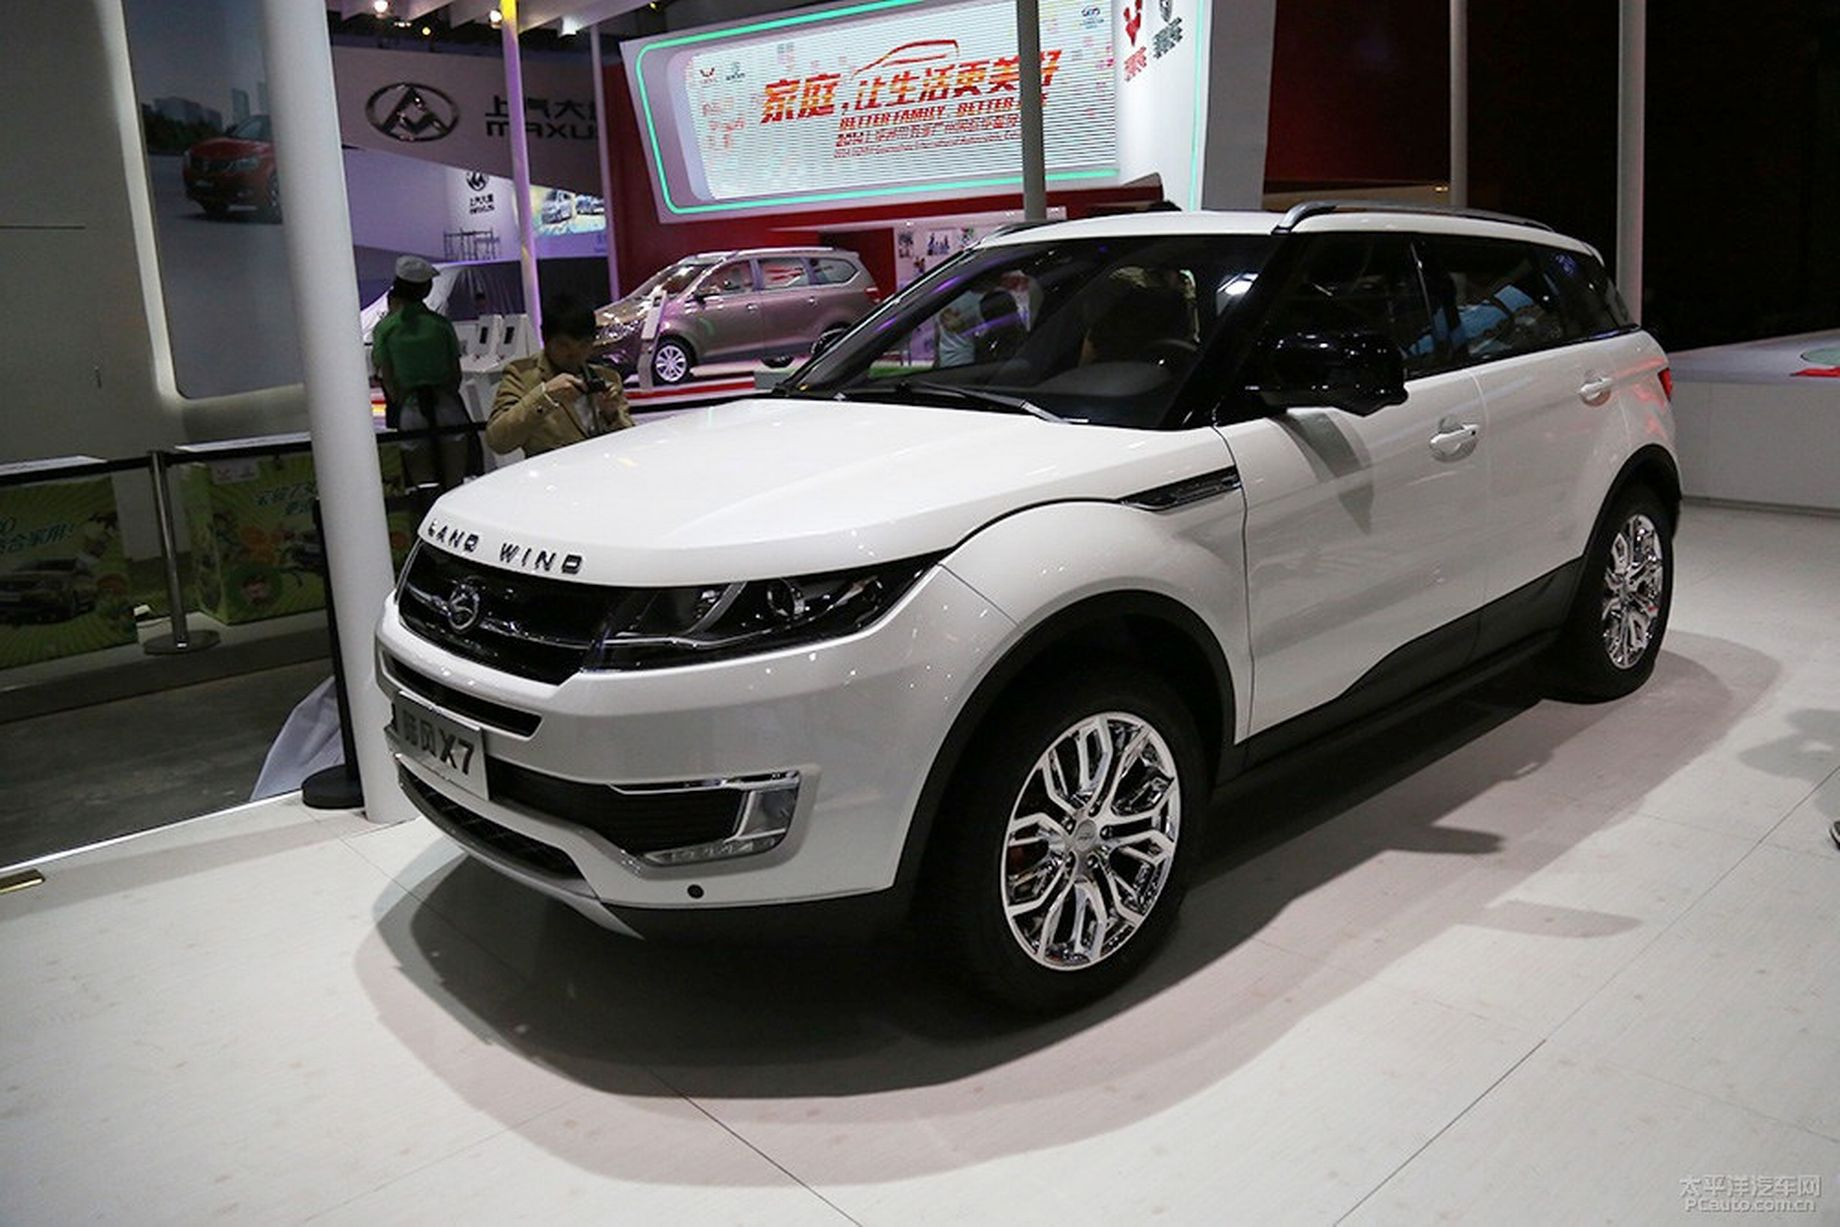 China s rip off Land Rover called a LandWind Mirror line